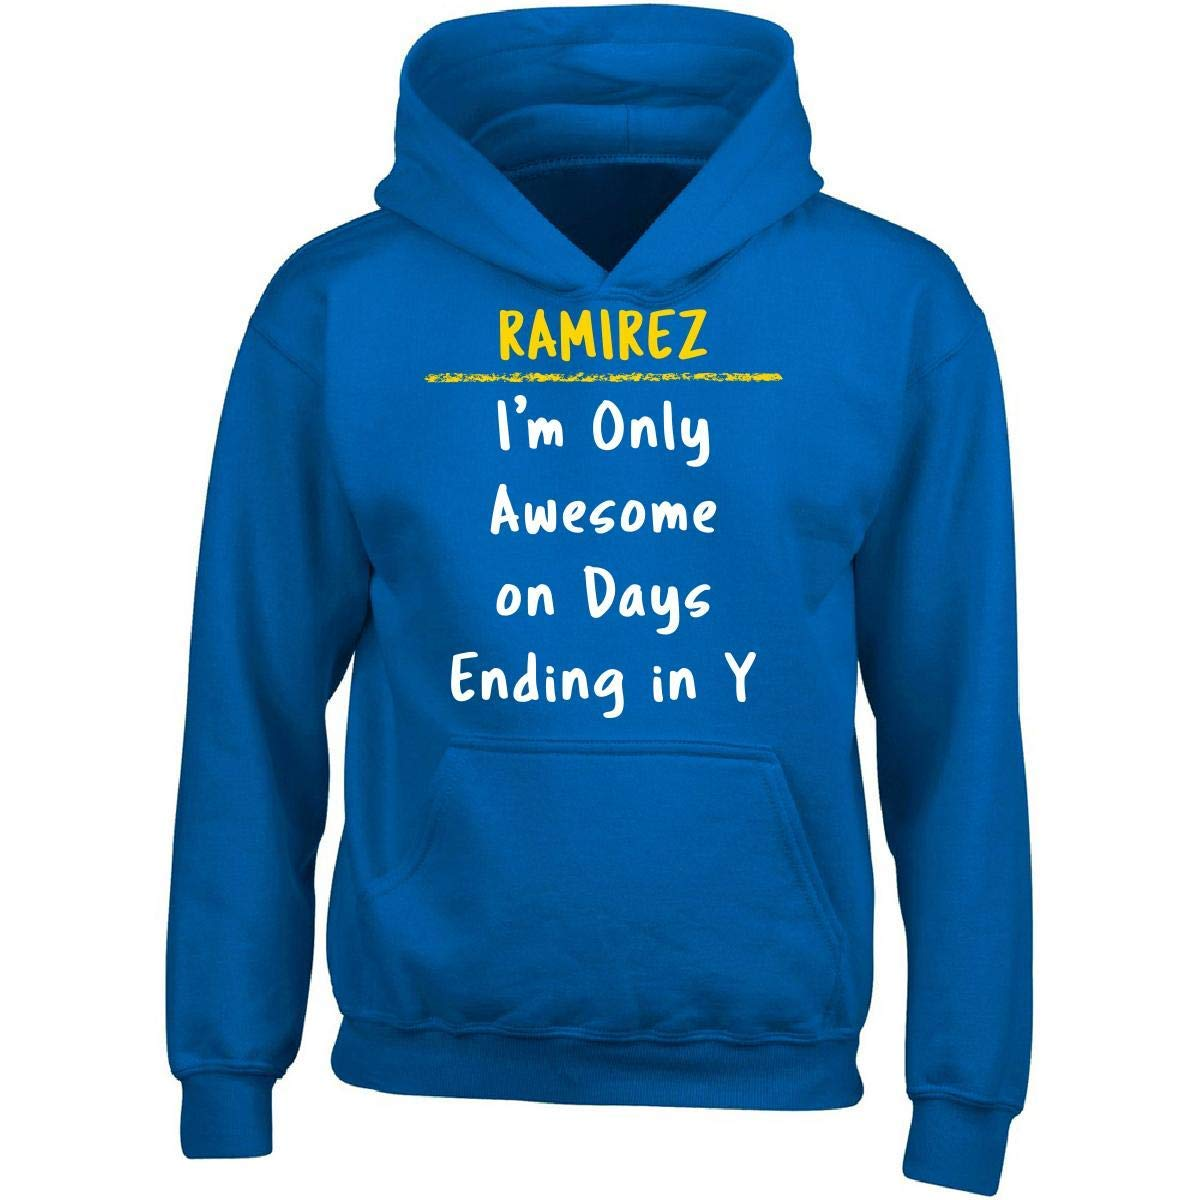 Sierra Goods Ramirez Awesome Sarcastic Funny Saying Name Office Gift - Adult Hoodie